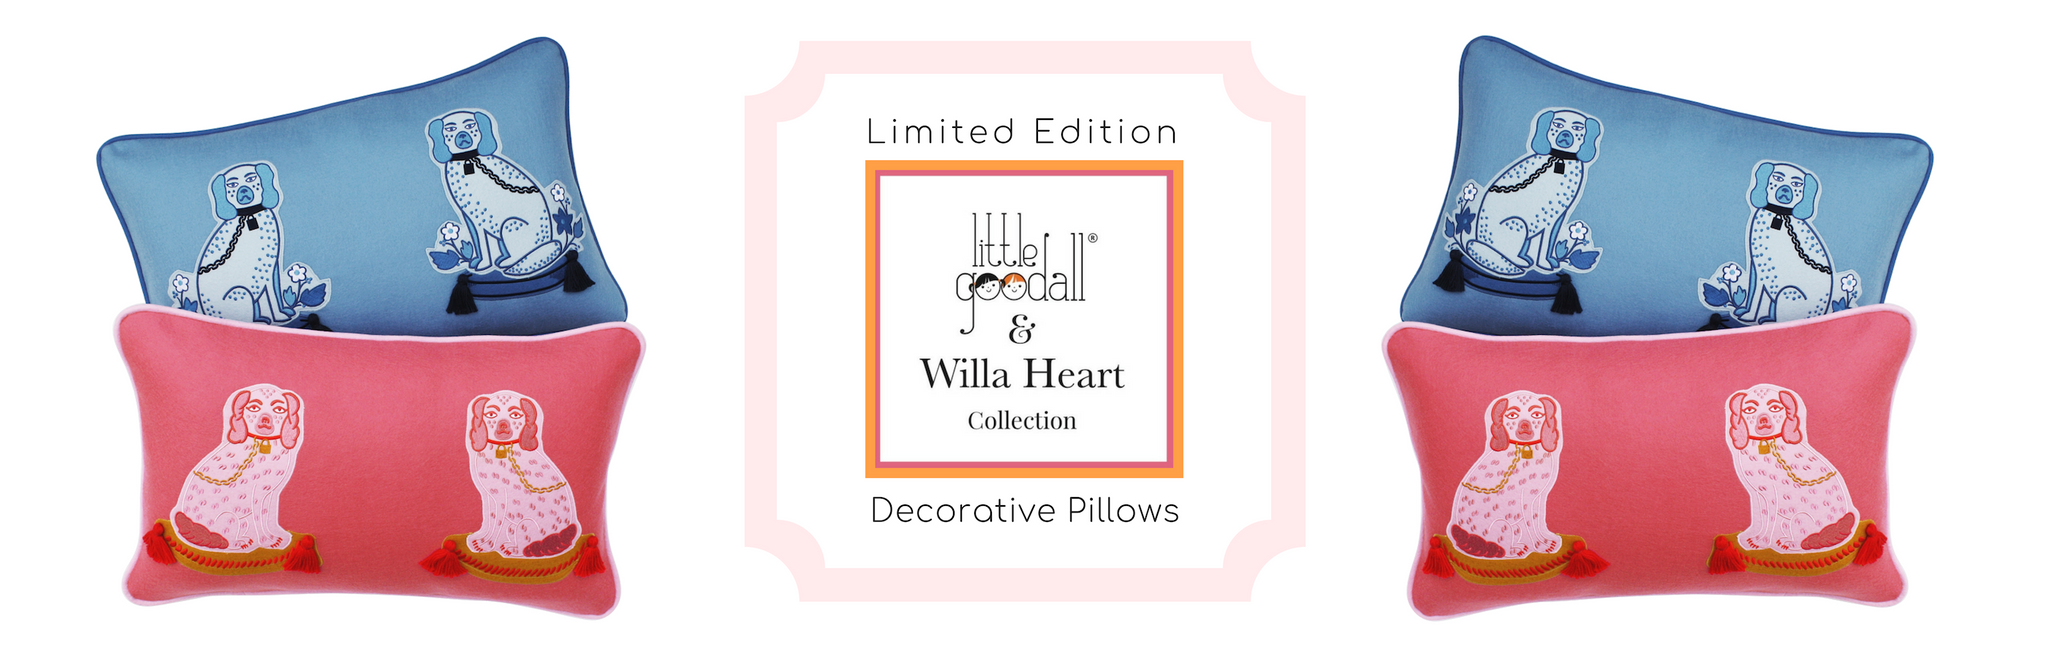 Willa Heart x Little Goodall Pink and Blue Pillows for Children's Room Decor